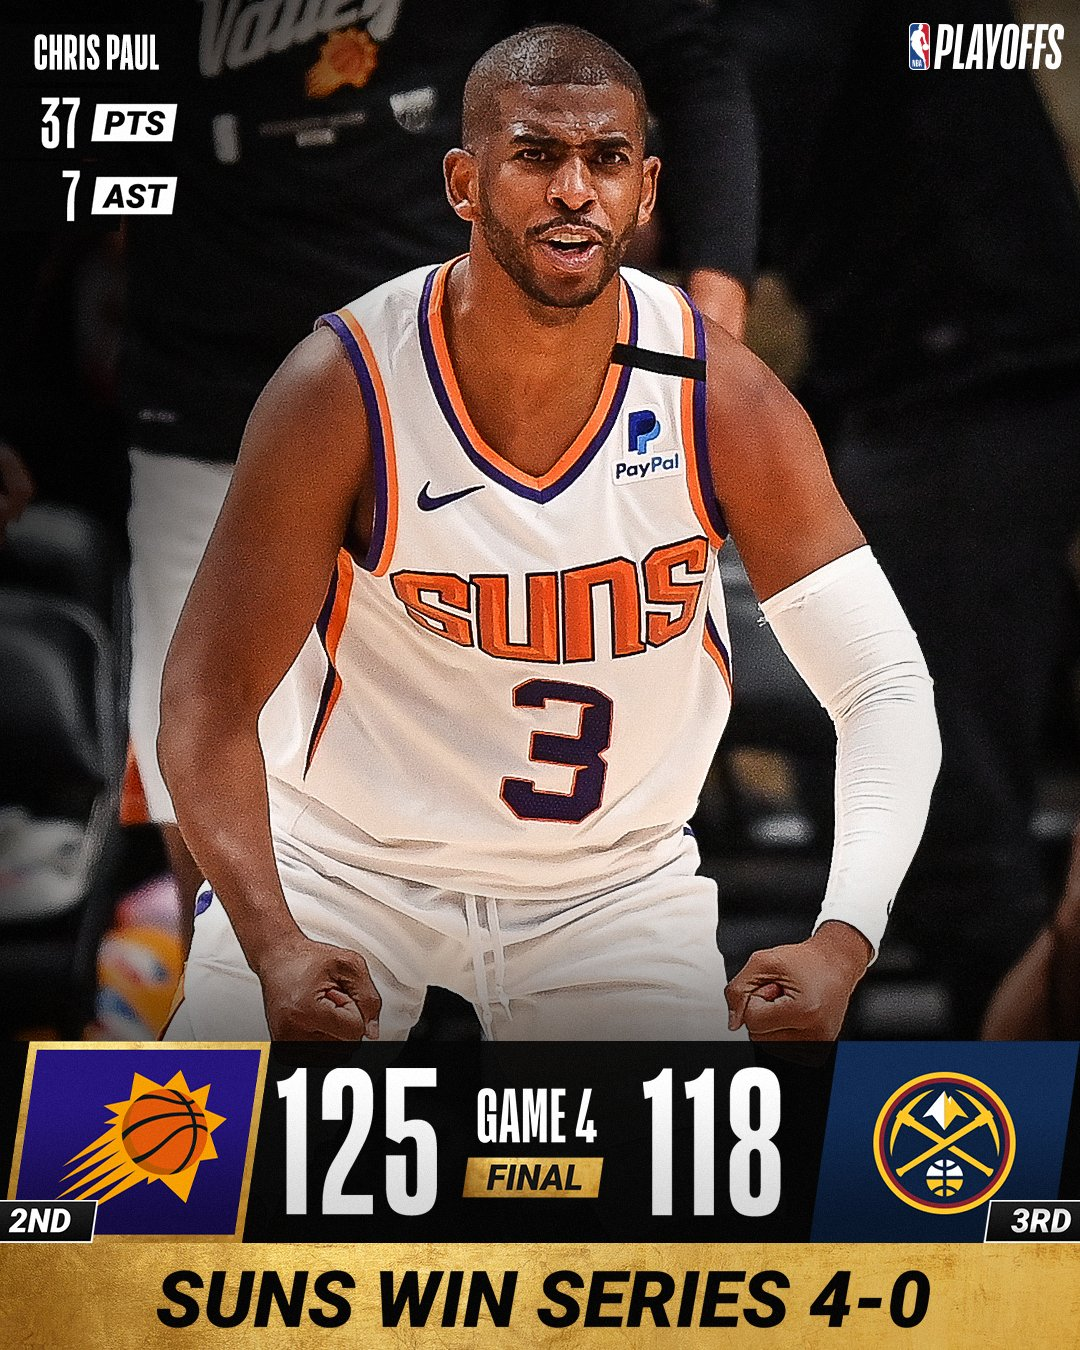 Chris Paul goes off for 37 points on 14-19 shooting in Game 4 to lead the @Suns to the #NBAWCF presented by AT&T! #ThatsGame   Devin Booker: 34 PTS, 11 REB Jae Crowder: 9 PTS, 10 REB, 4 BLK https://t.co/ZrRRMs9GW9